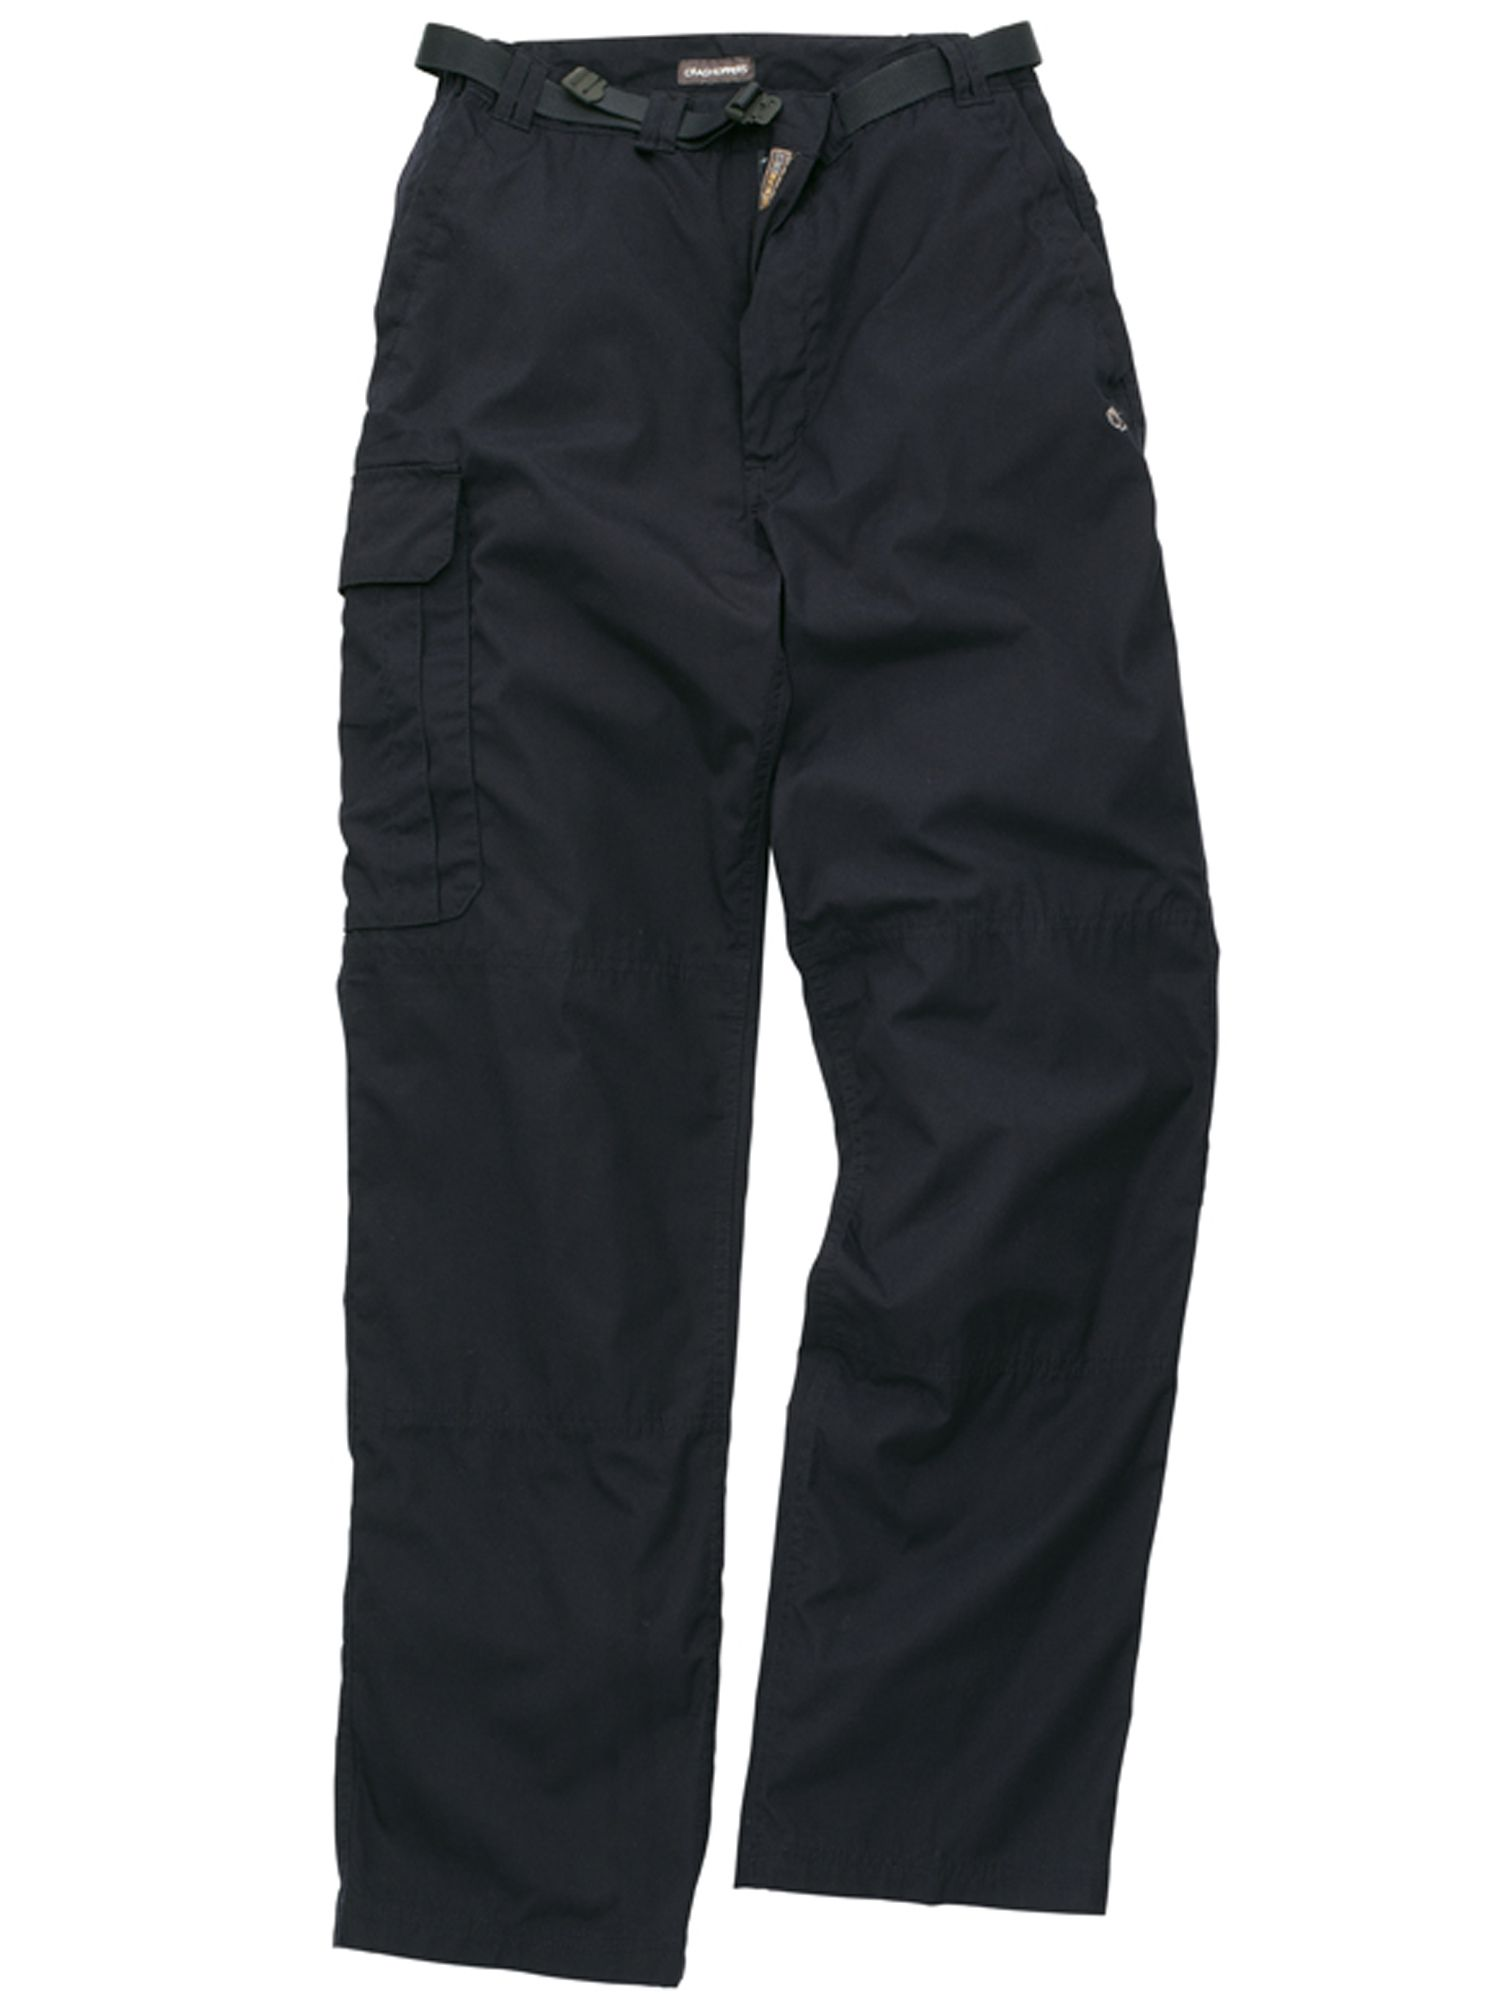 Mens Craghoppers Classic kiwi trousers Navy